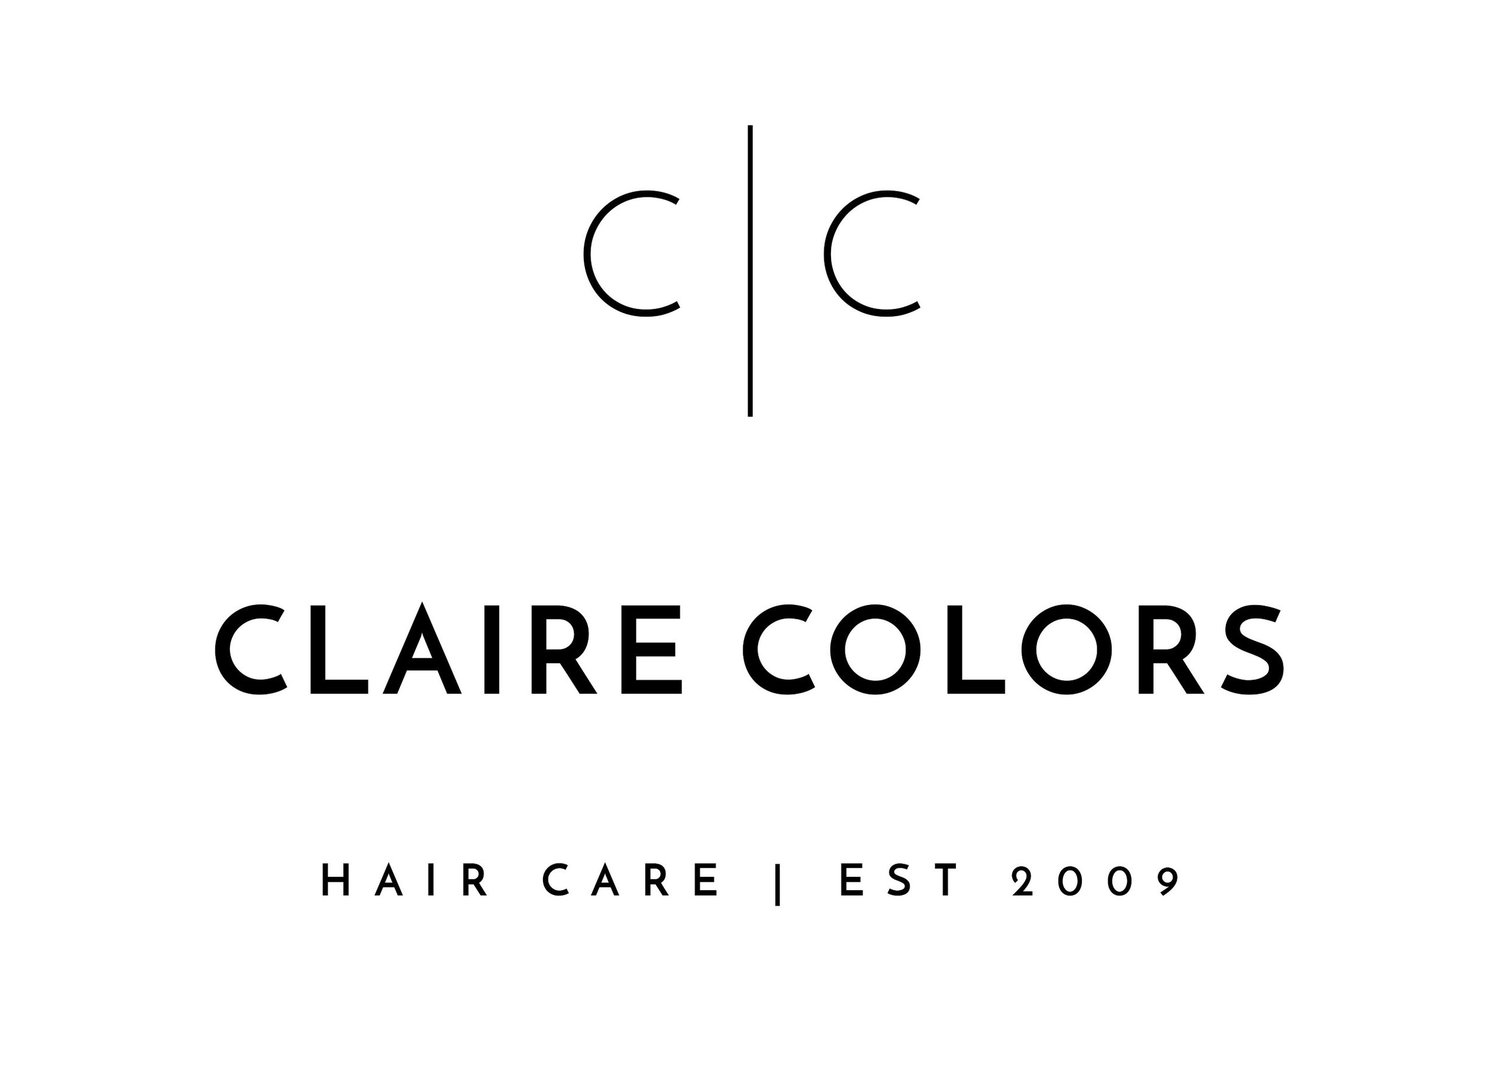 CLAIRE COLORS